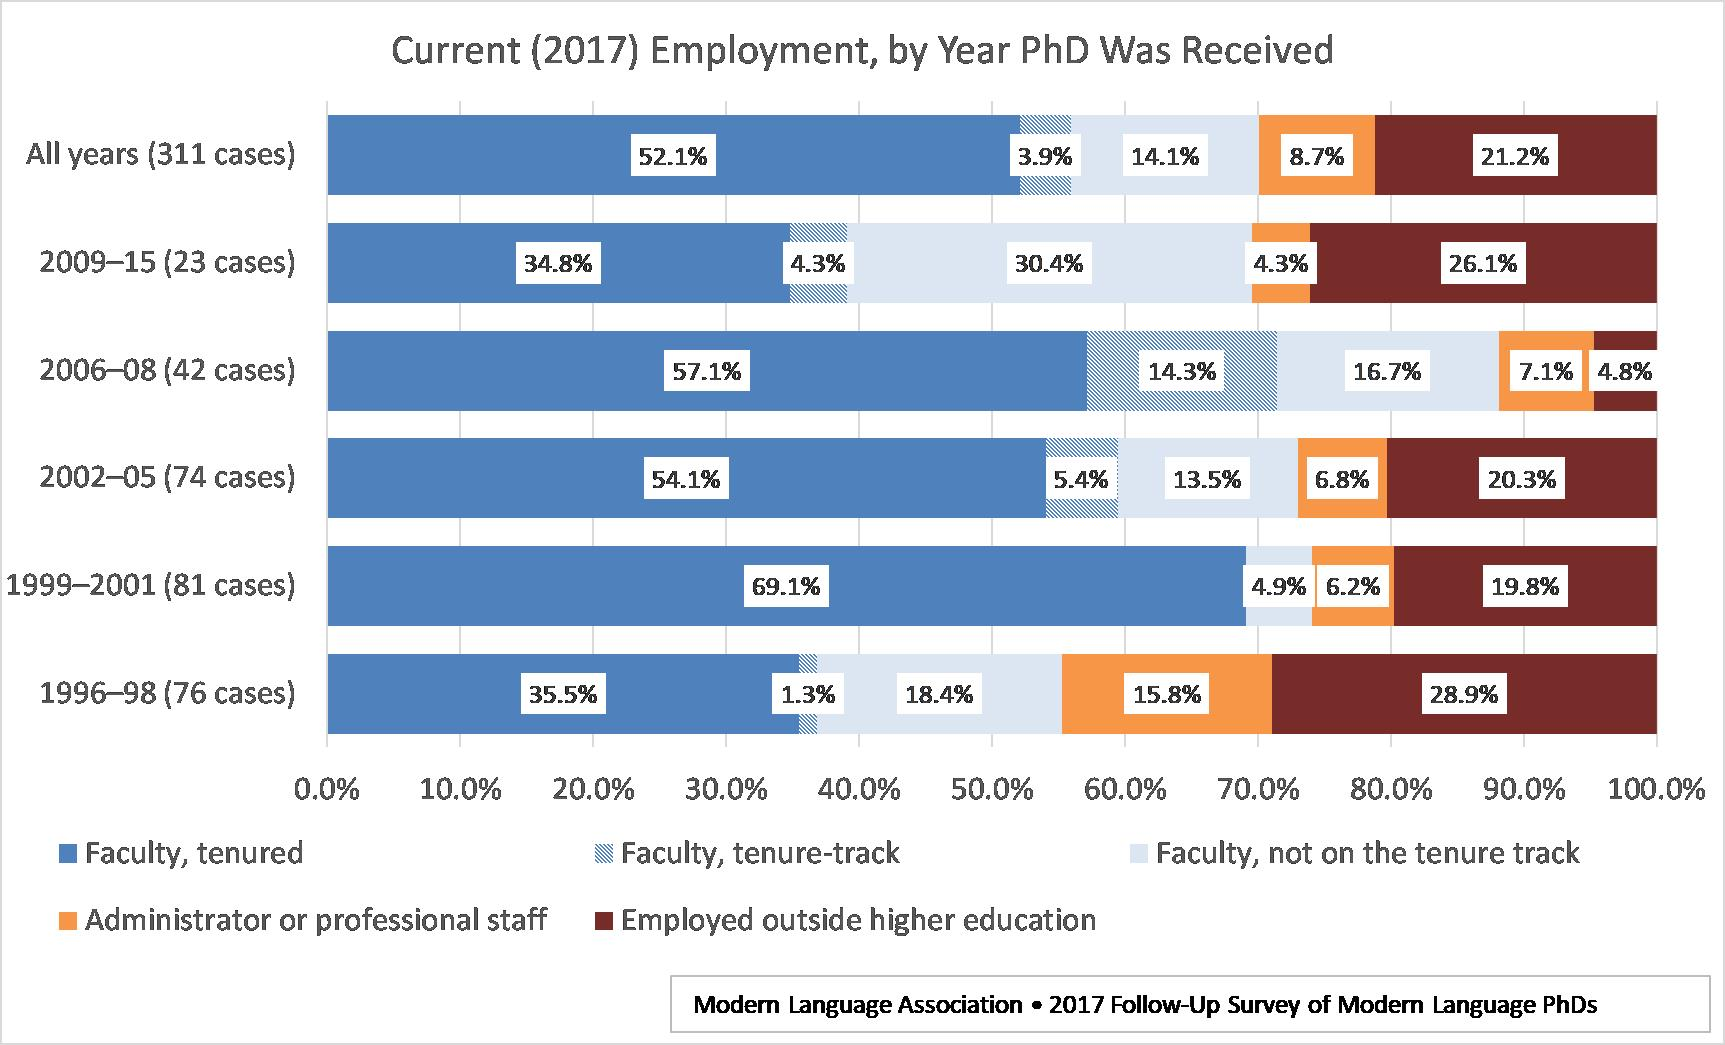 Current (2017) Employment by Year PhD Was Received